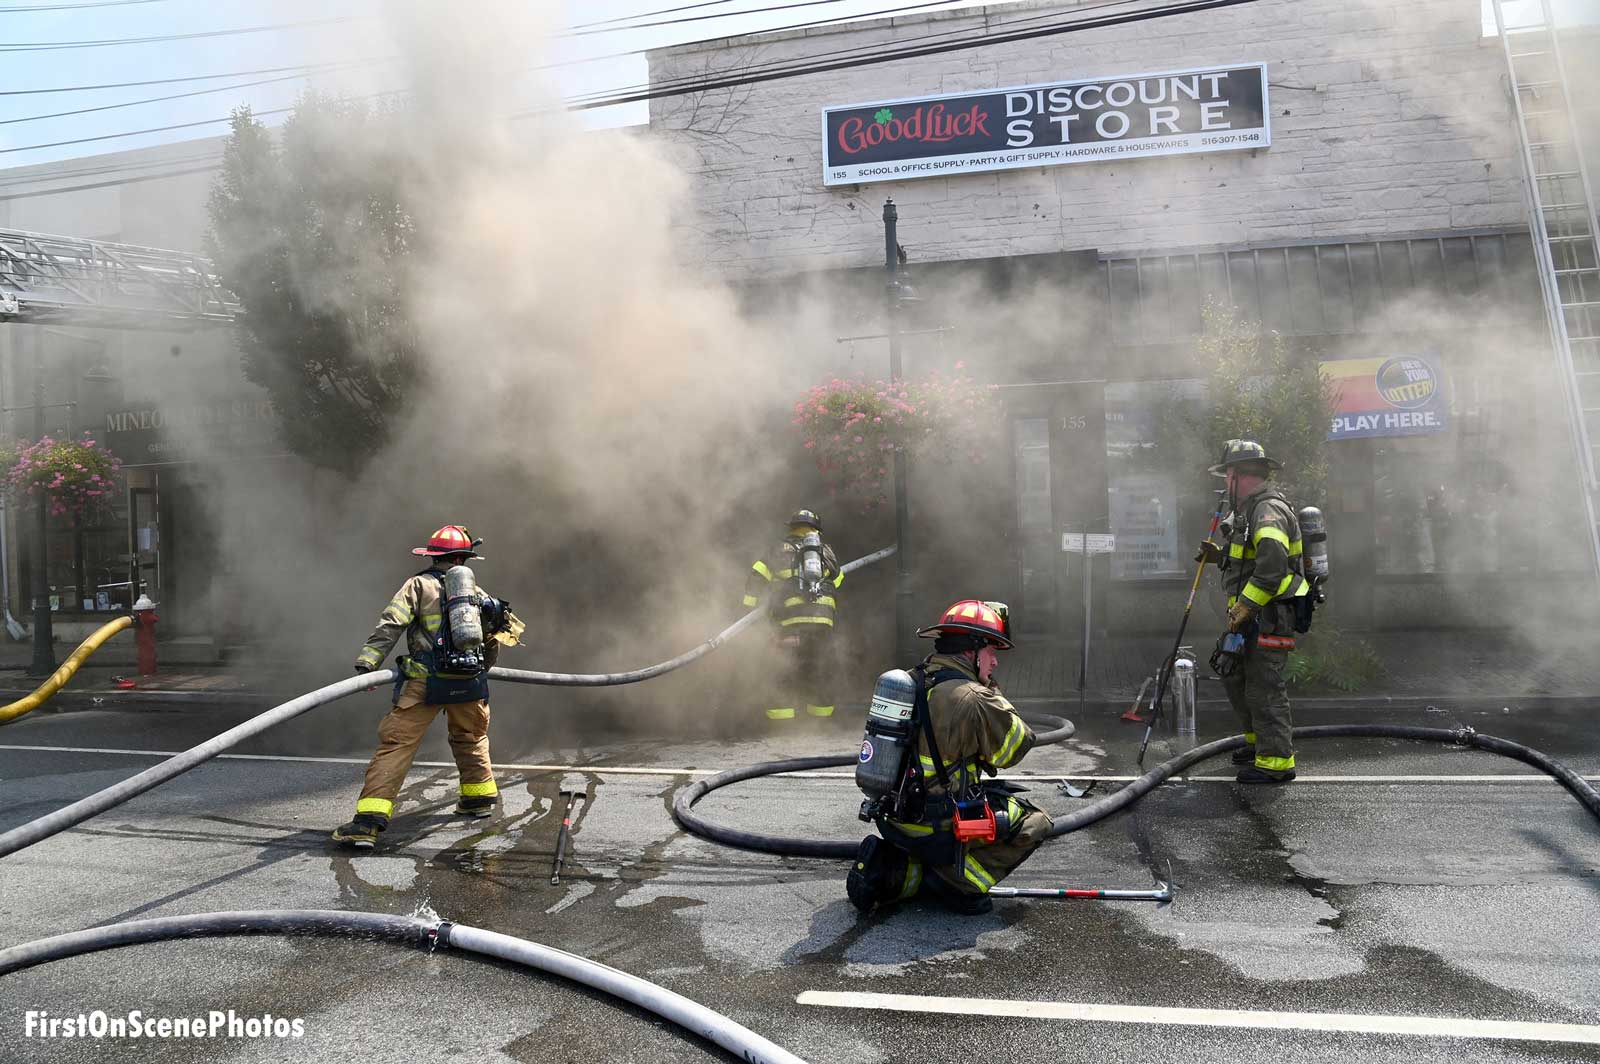 Smoke envelopes firefighters at Mineola fire